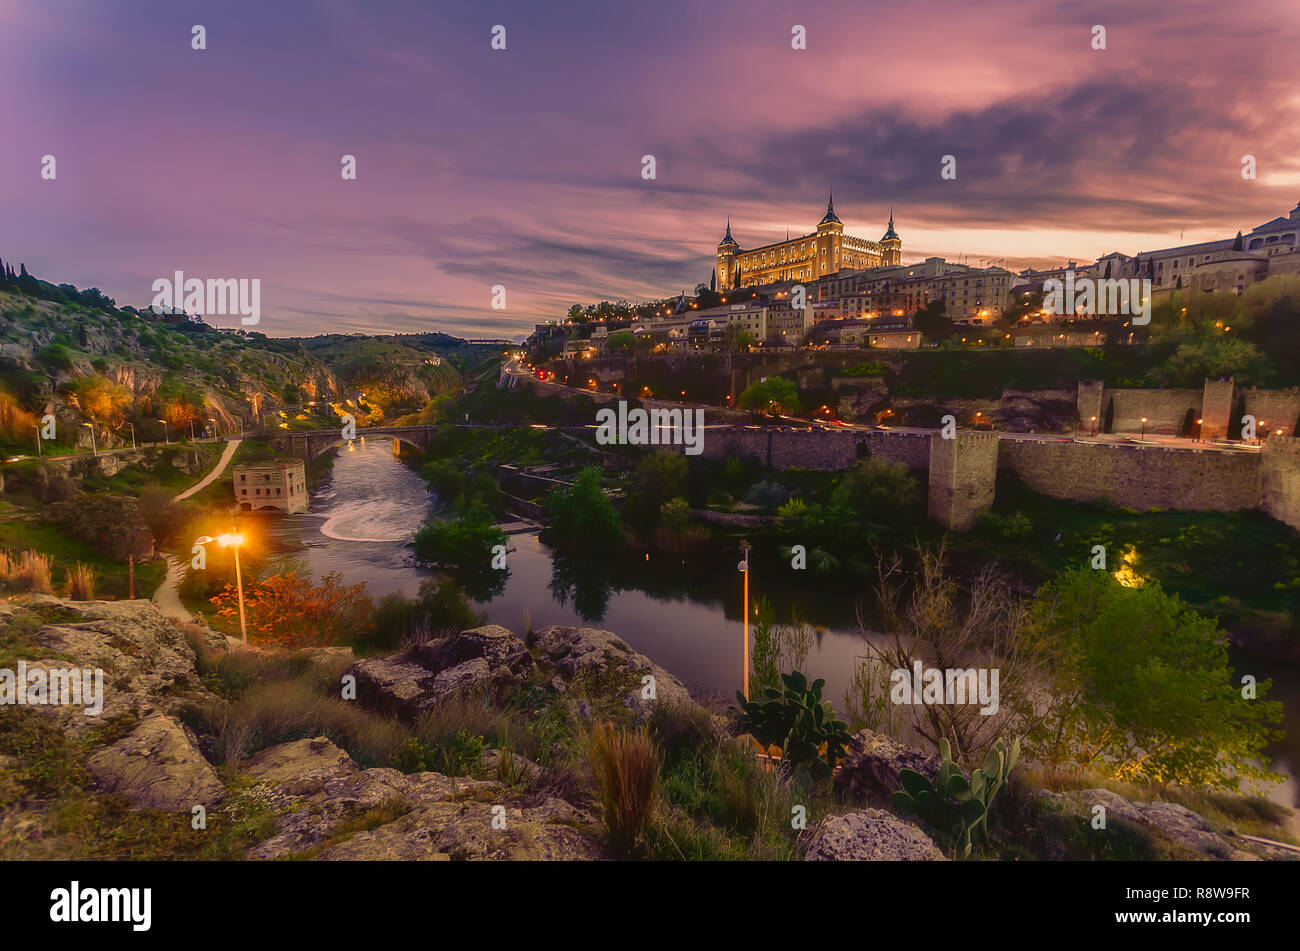 Toledo seen from the other side of the Tagus River at sunset with the Alcázar de Toledo illuminated Stock Photo